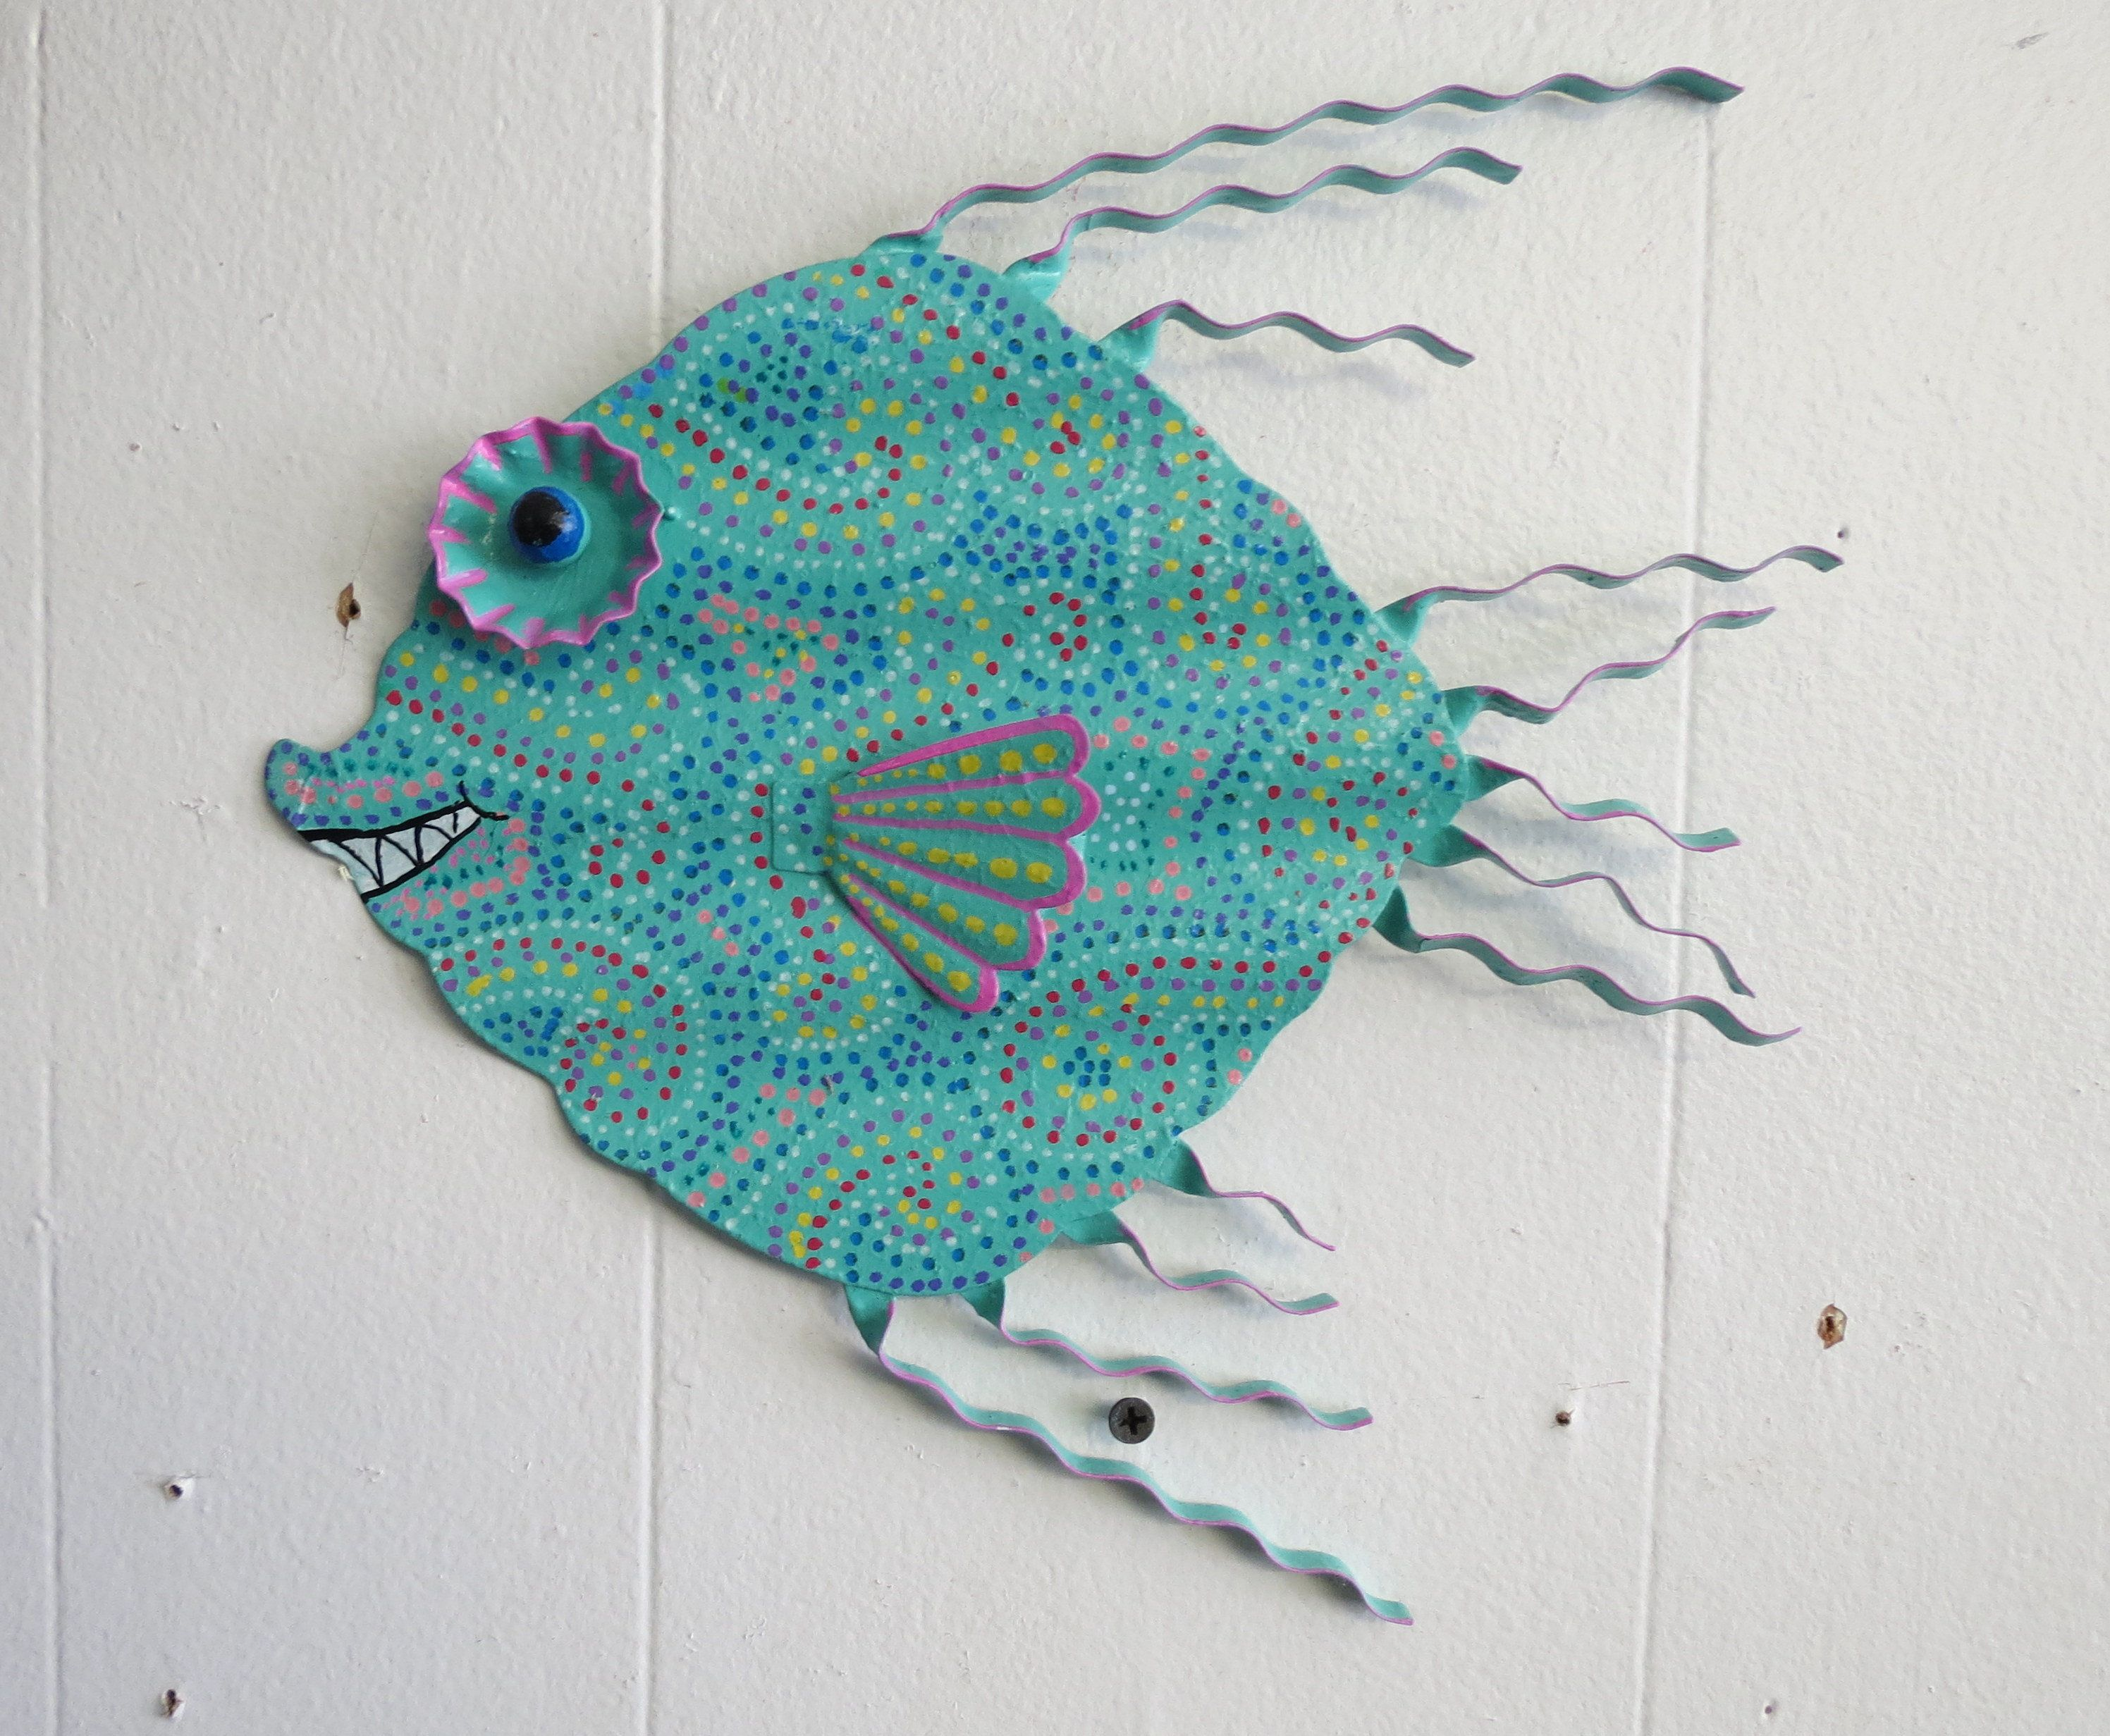 Fun whimsy metal fish wall or outdoor art hand painted decor beach